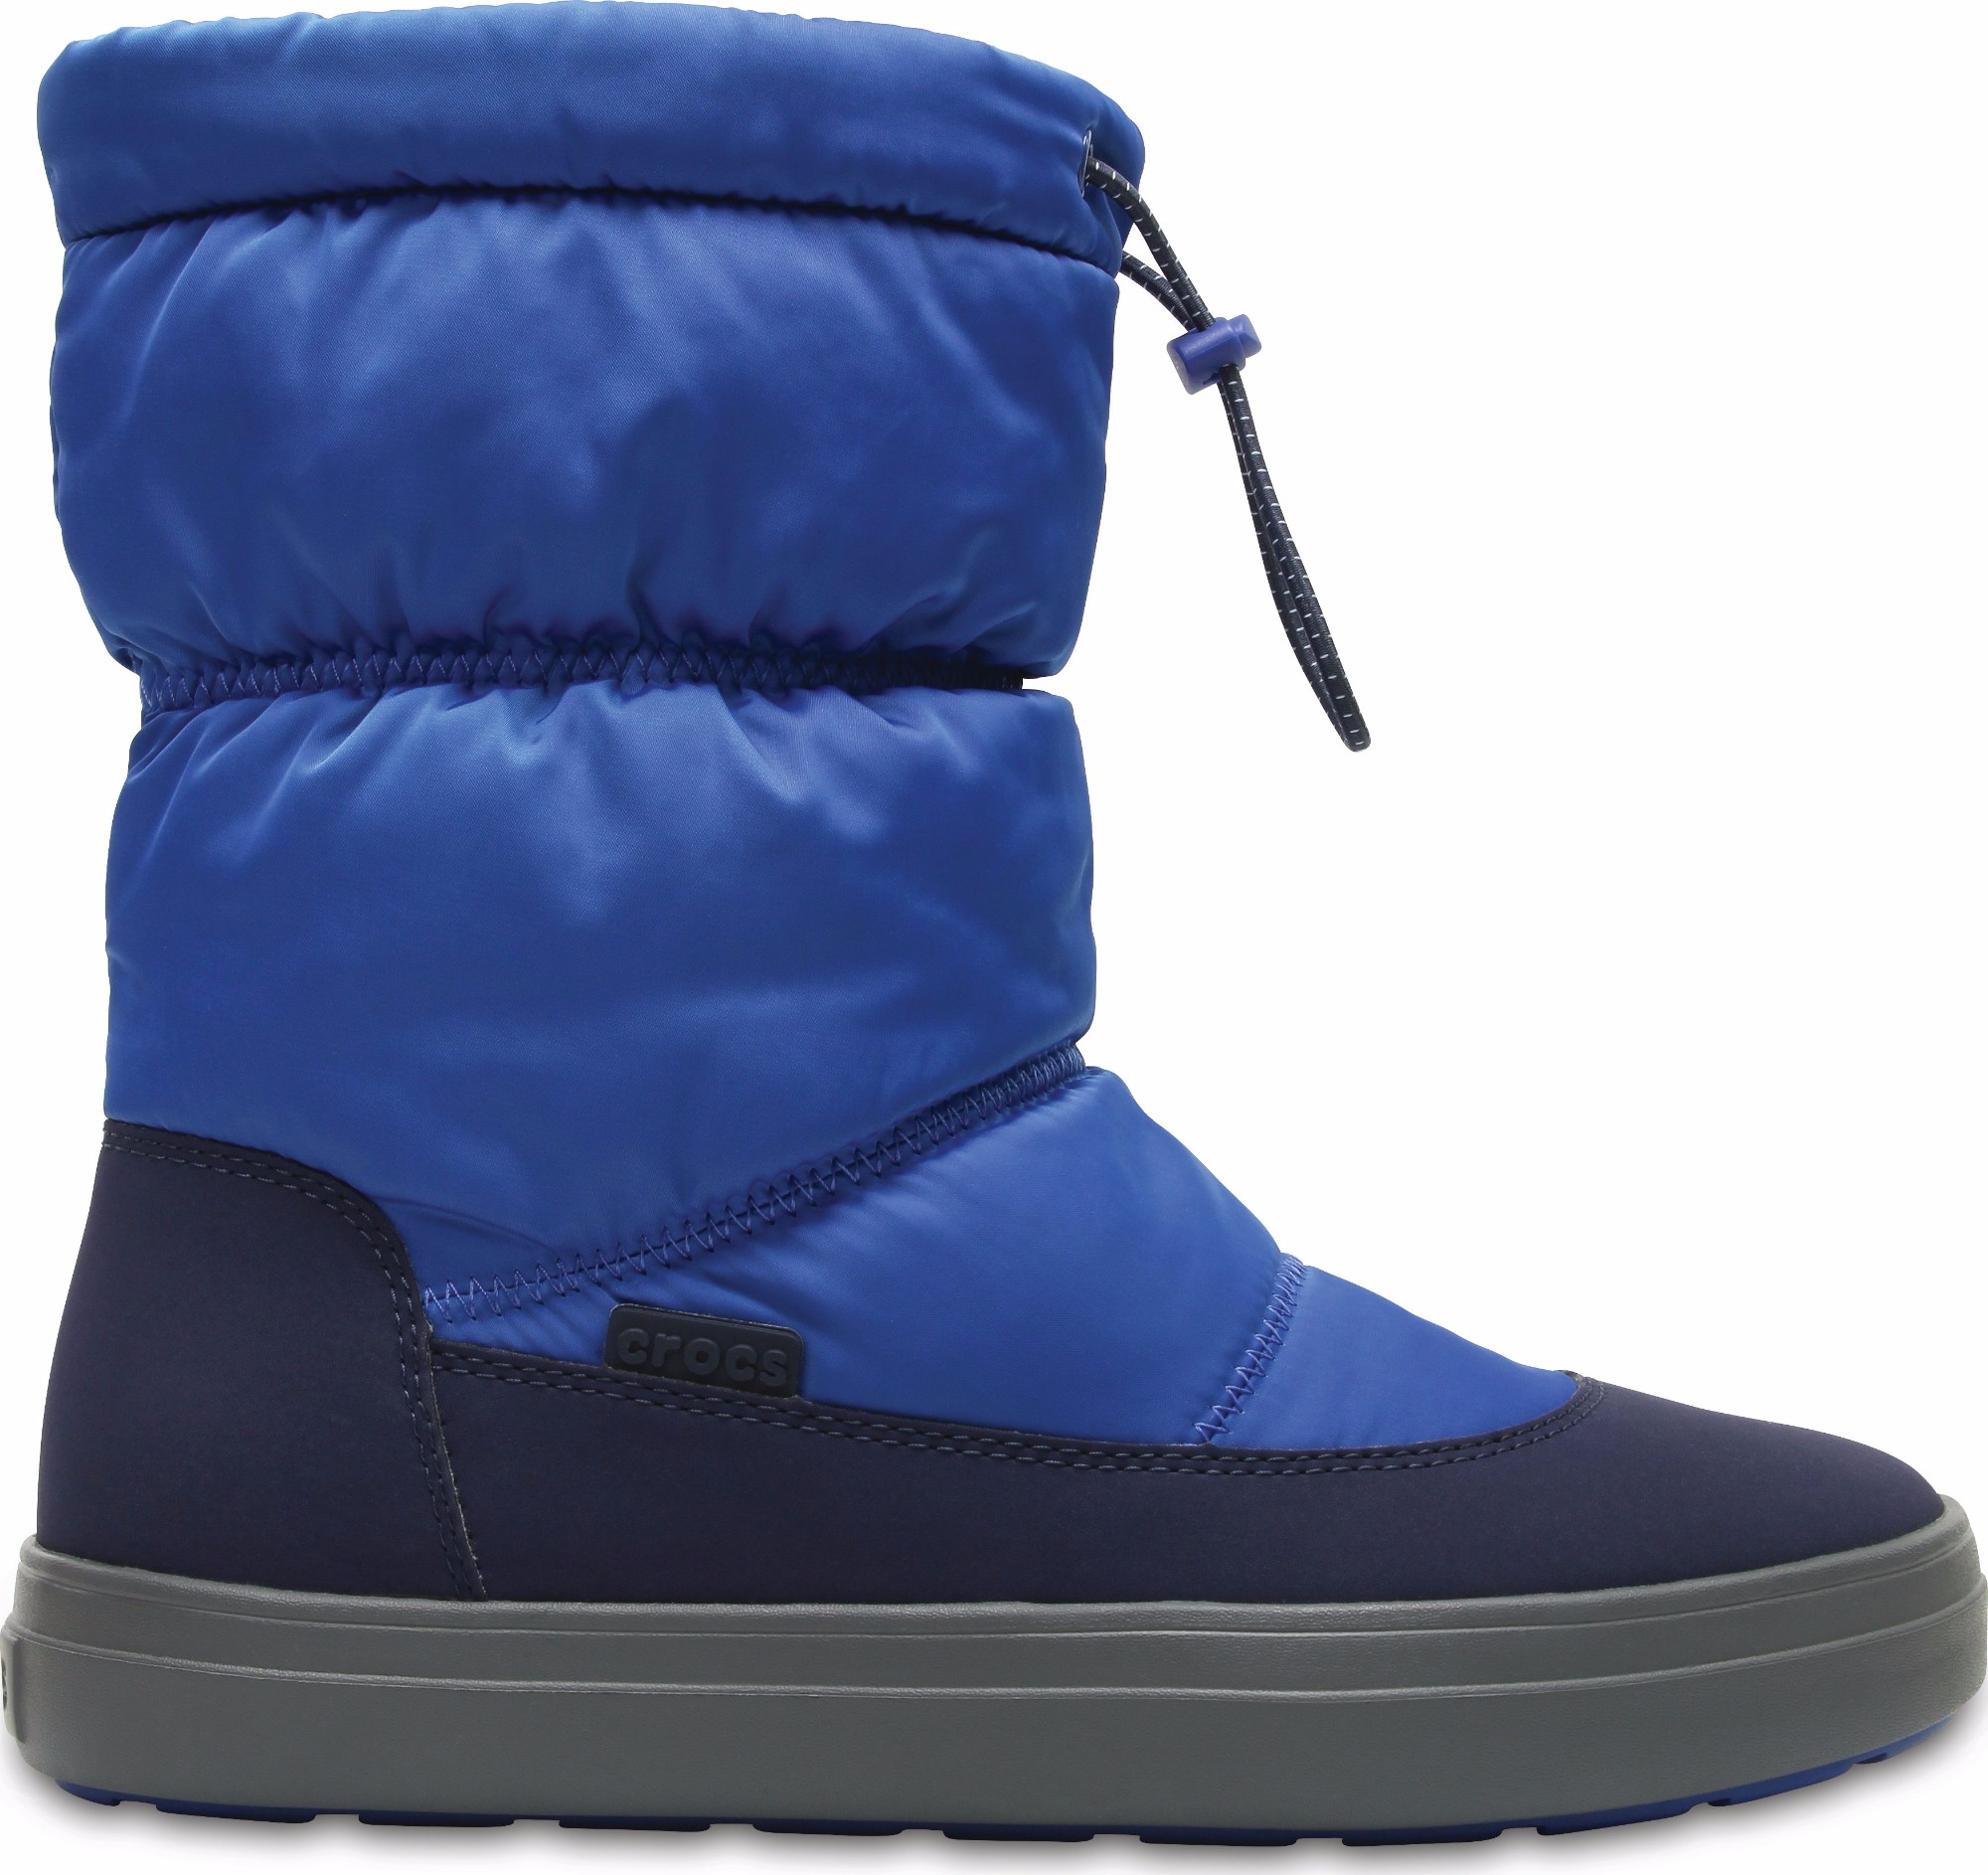 Crocs™ Lodgepoint Shiny Pull-On Boot Blue Jean/Navy 37,5